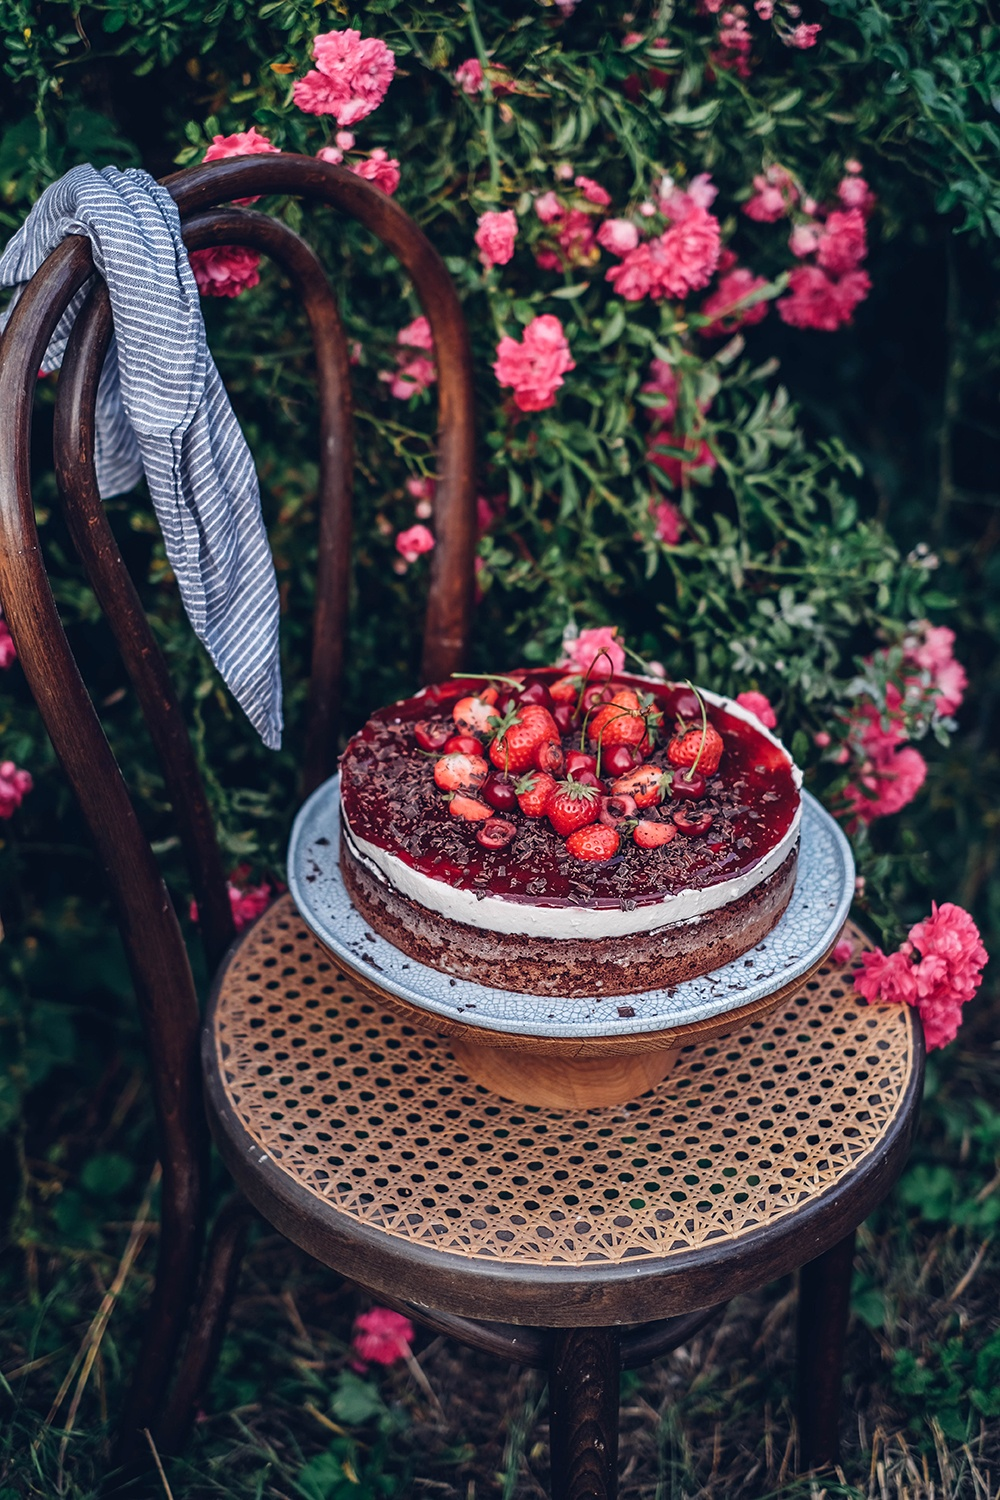 glutenfree chocolate cherry cake